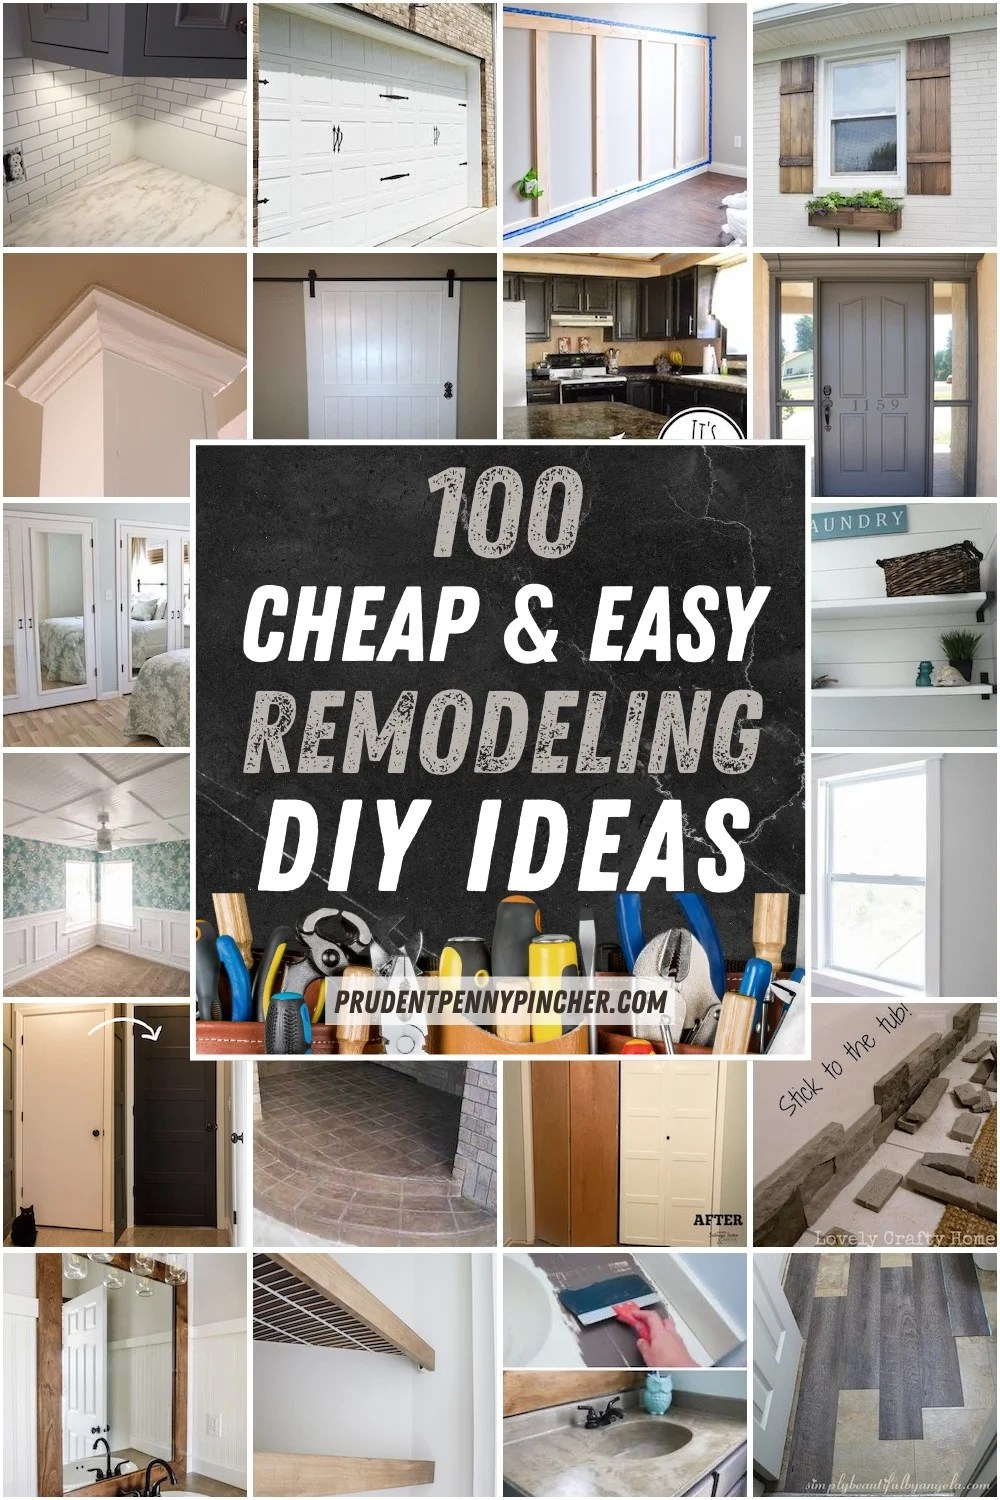 100 Diy Remodeling Ideas On A Budget Prudent Penny Pincher,Small Apartment Bedroom Layout